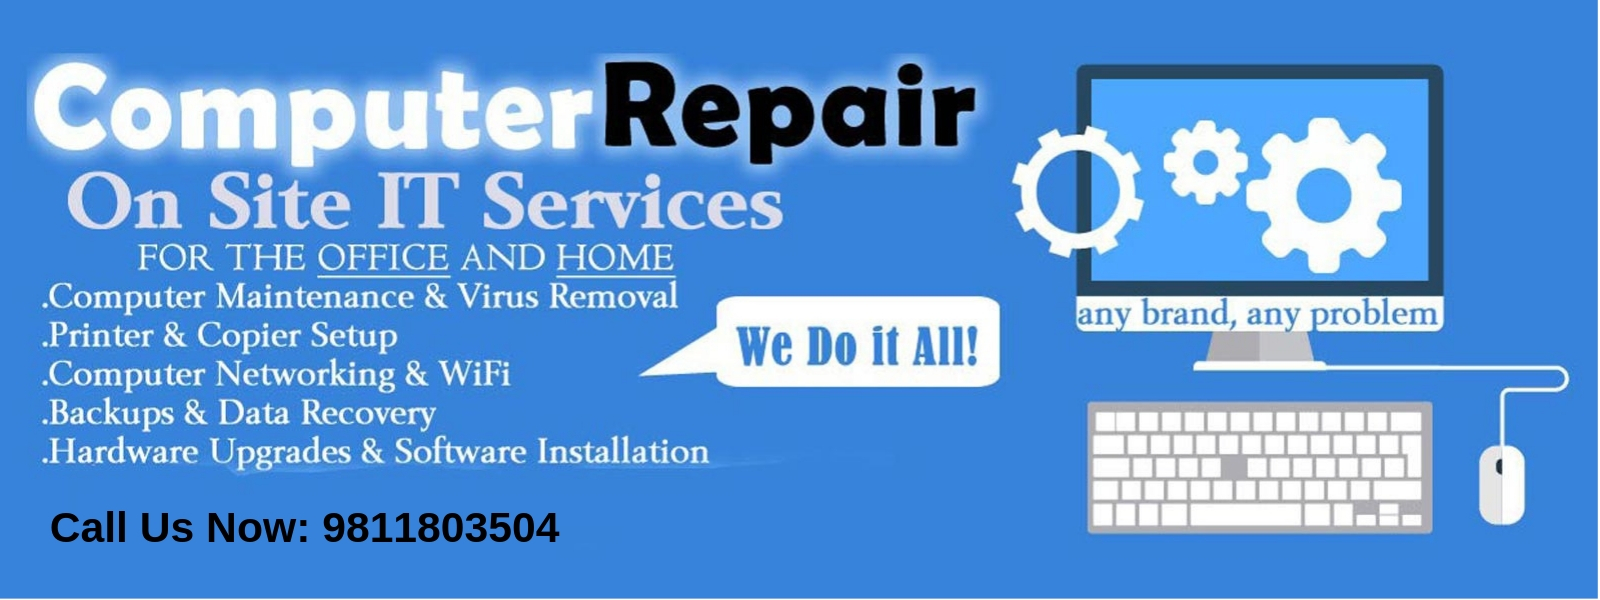 laptop repair in Delhi, laptop repair in Delhi NCR, Printer repair in Delhi, Printer repair in Delhi NCR, AMC Services nodia